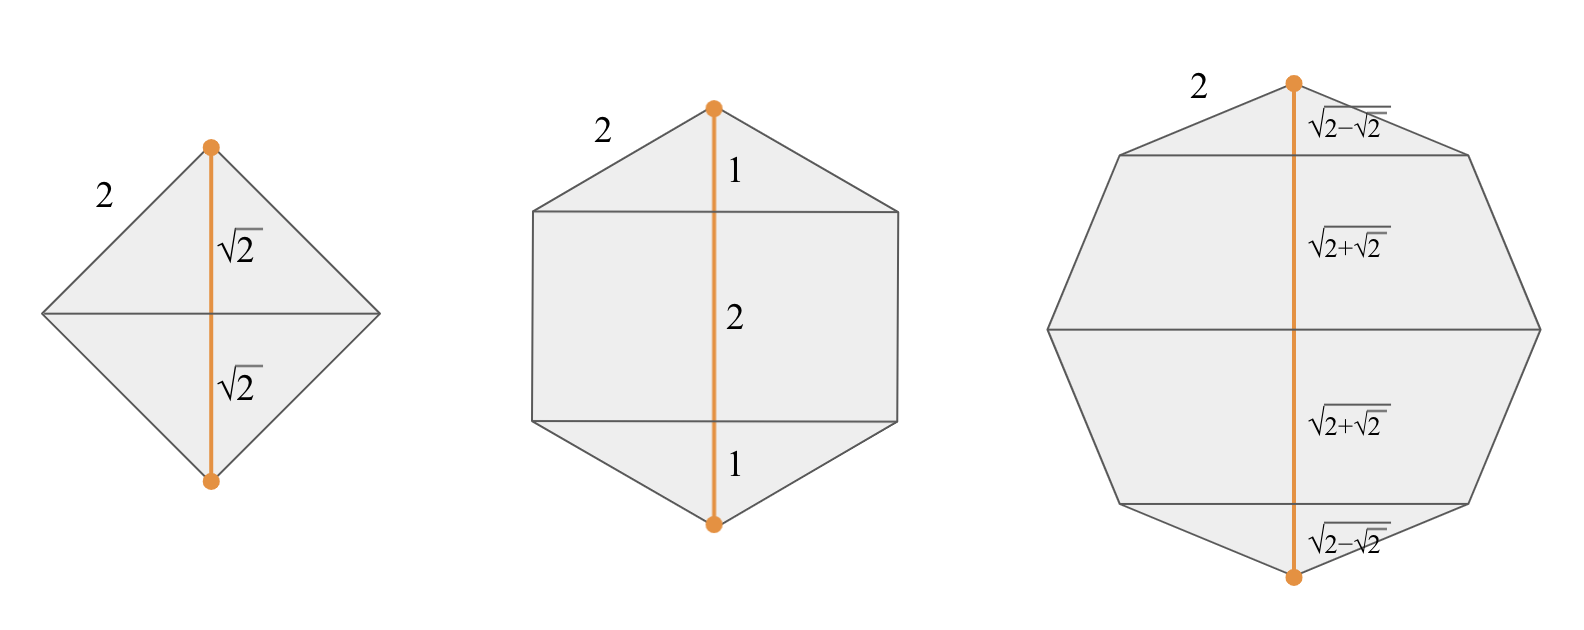 Three polygons are shown: a square, a regular hexagon and a regular octagon, each with side length 2. A long diagonal is shown for each, split into parts by other perpendicular diagonals. The segments for the square are both sqrt(2). The segments for the hexagon are 1, 2 and 1. The segments for the octagon are sqrt(2-sqrt(2)), sqrt(2+sqrt(2)), sqrt(2+sqrt(2)) and sqrt(2-sqrt(2)).